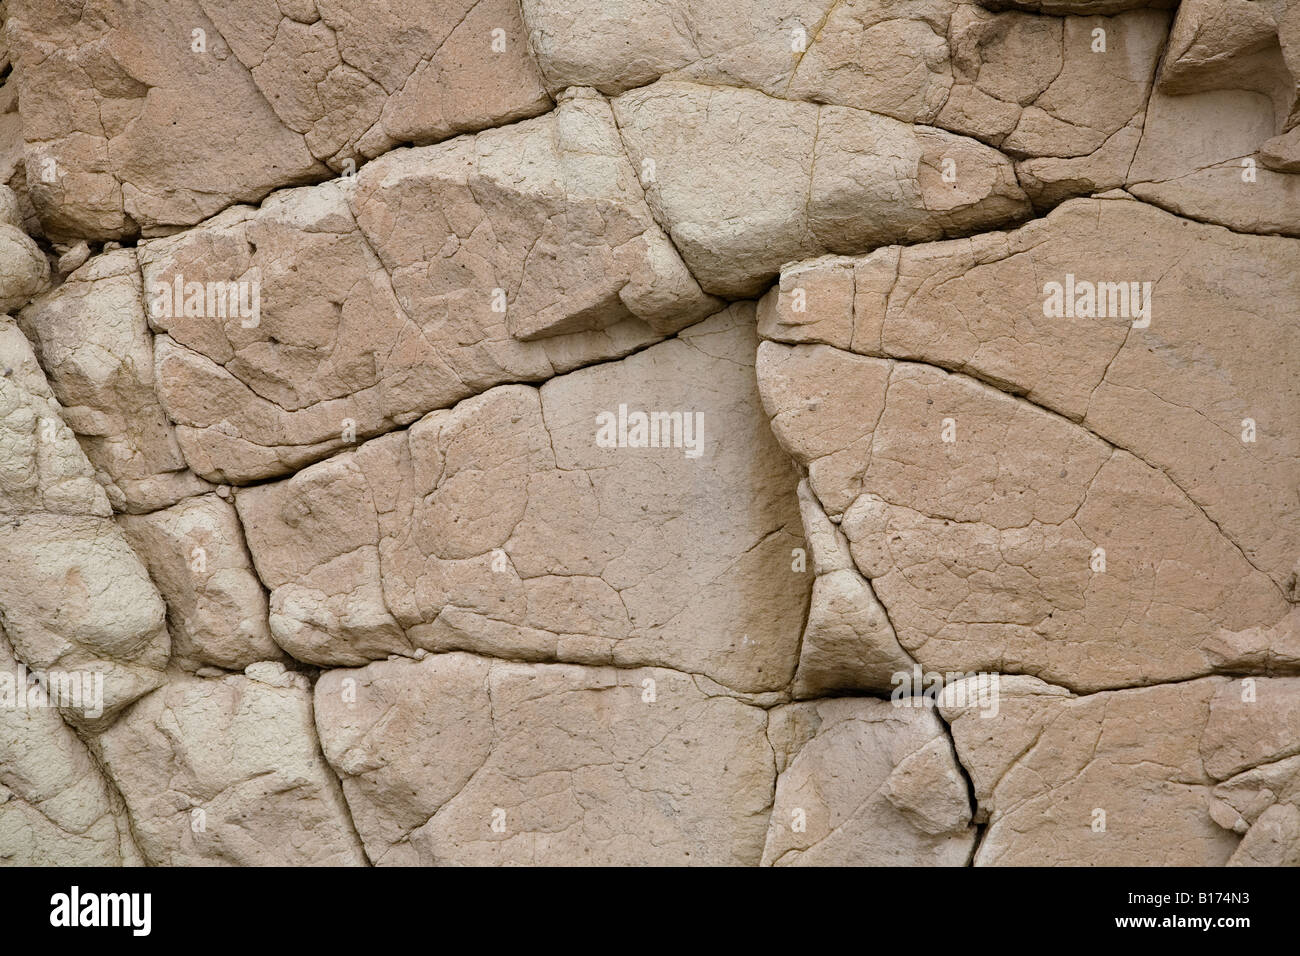 an old natural stone texture with cracks Stock Photo